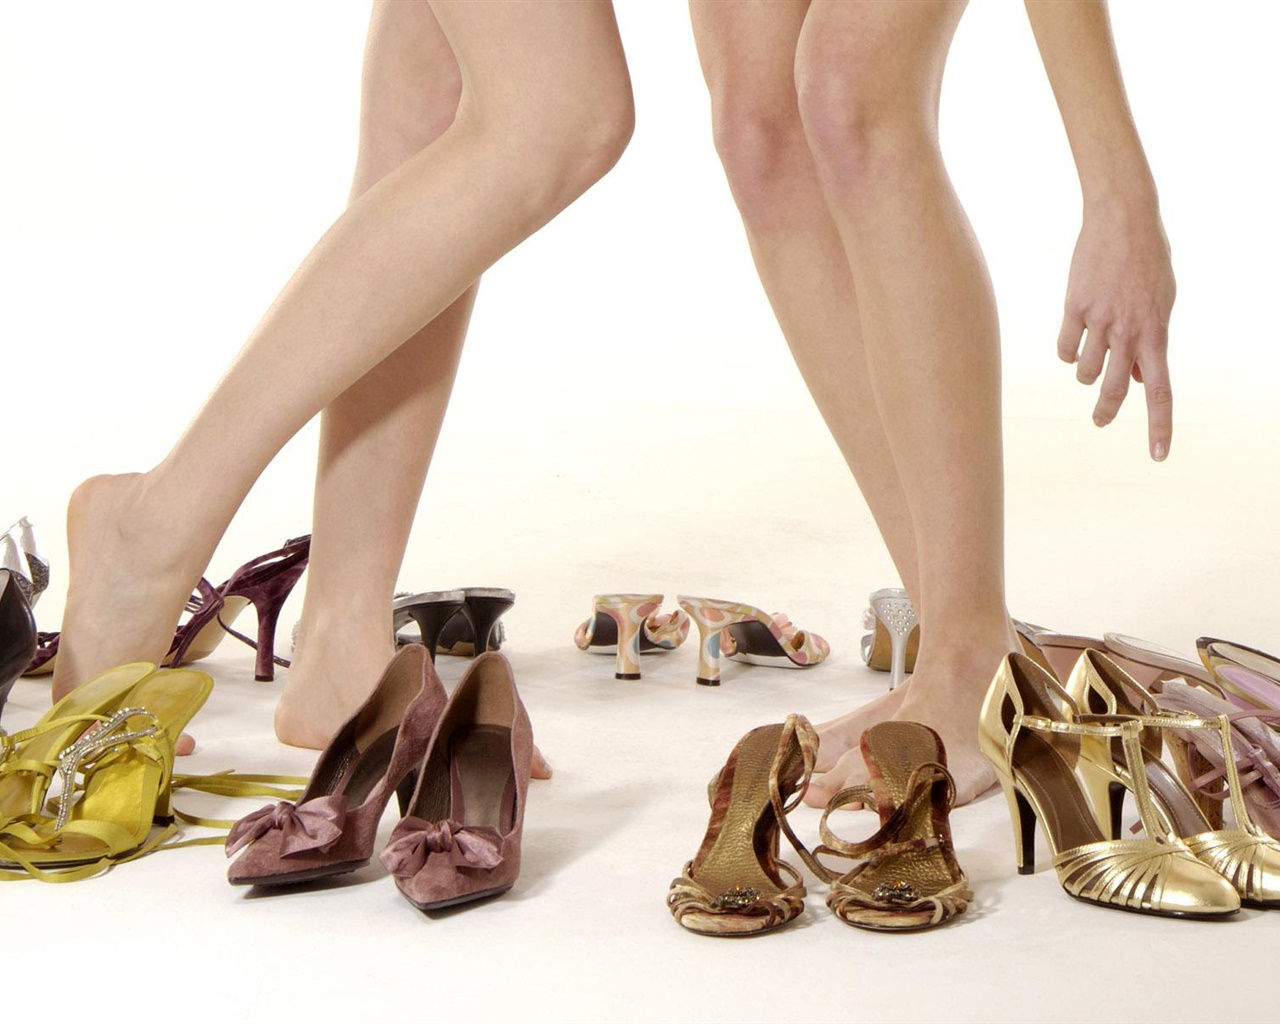 Girls legs, high-heeled shoes 1280x1024 wallpaper